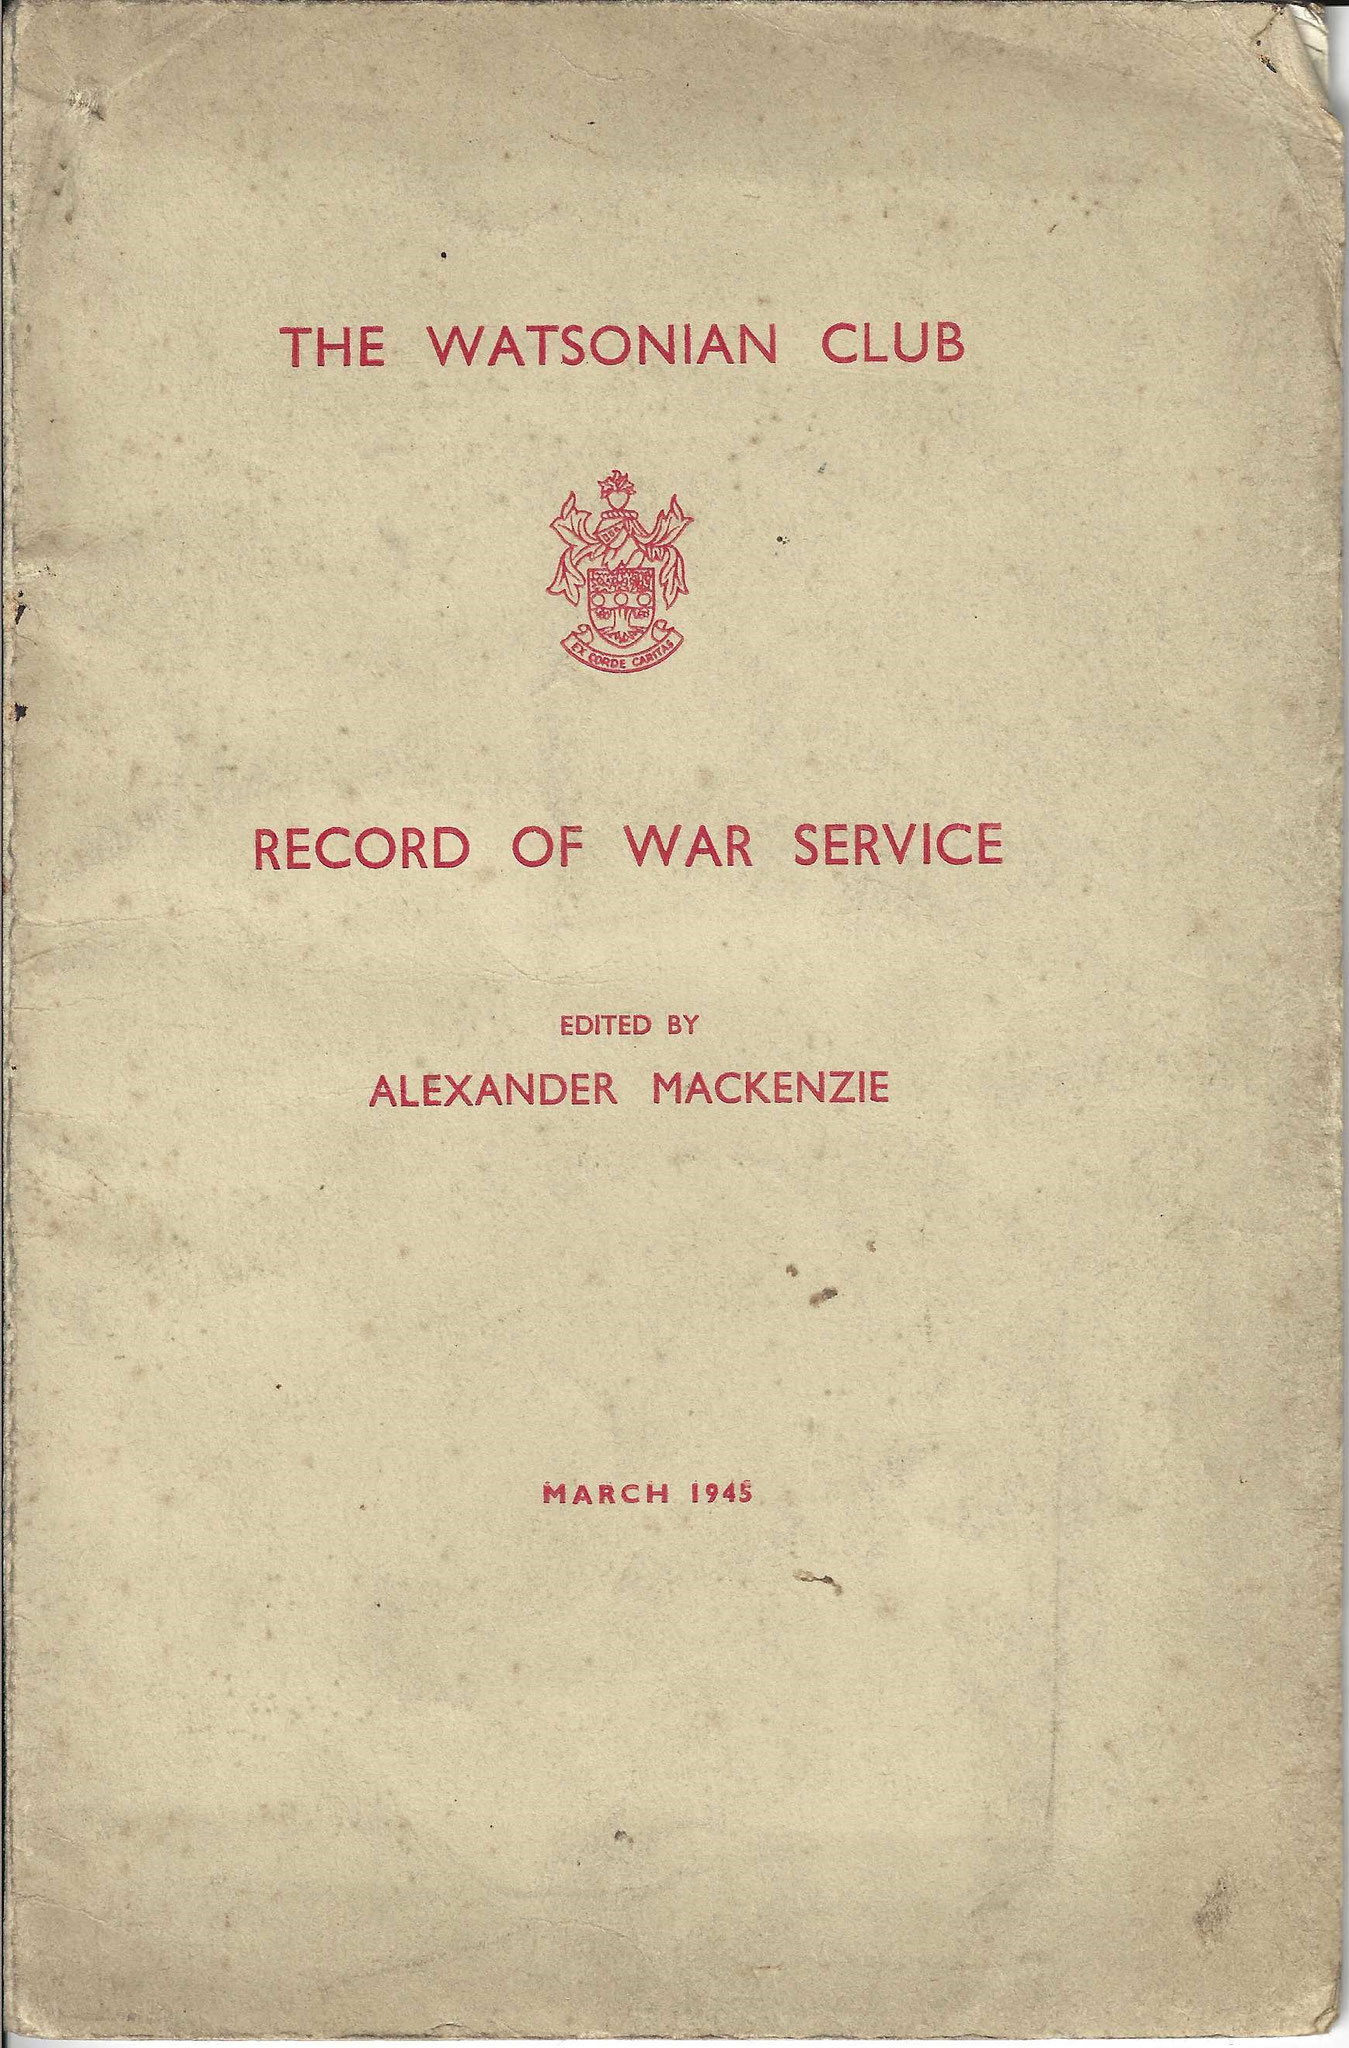 The Watsonian Club Record of War Service, March 1945 (collection P. Reinders)